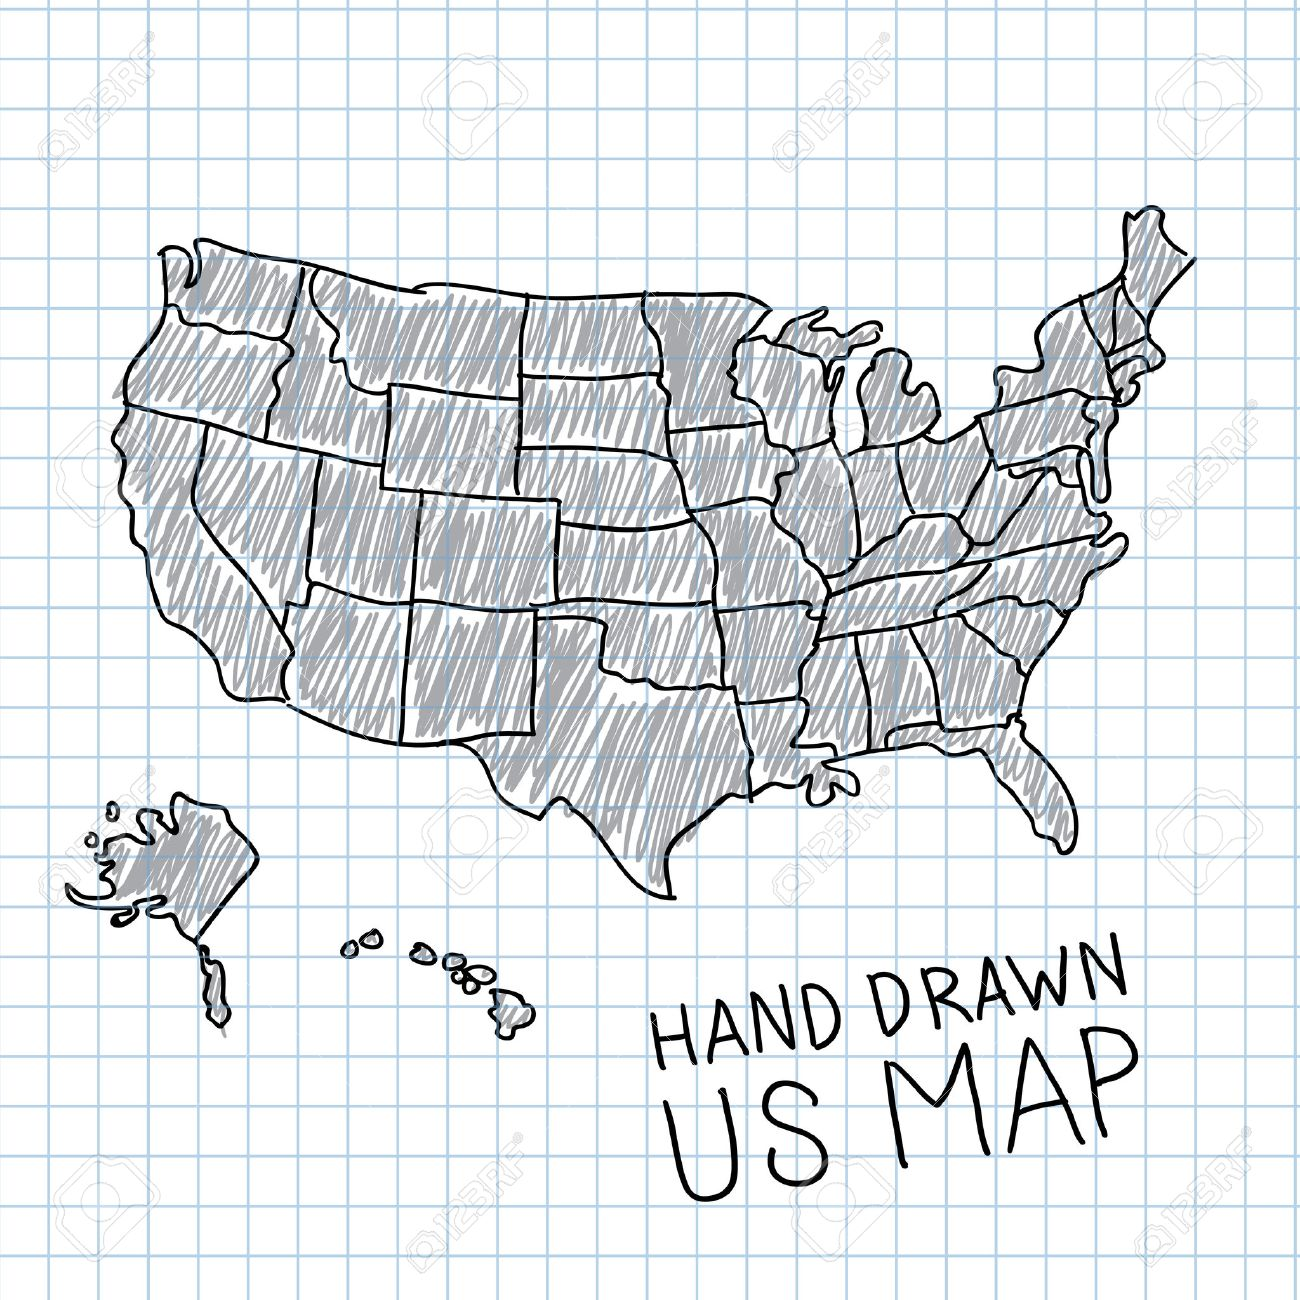 Hand Drawn US Map Vector Illustration Royalty Free Cliparts - Free us map vector